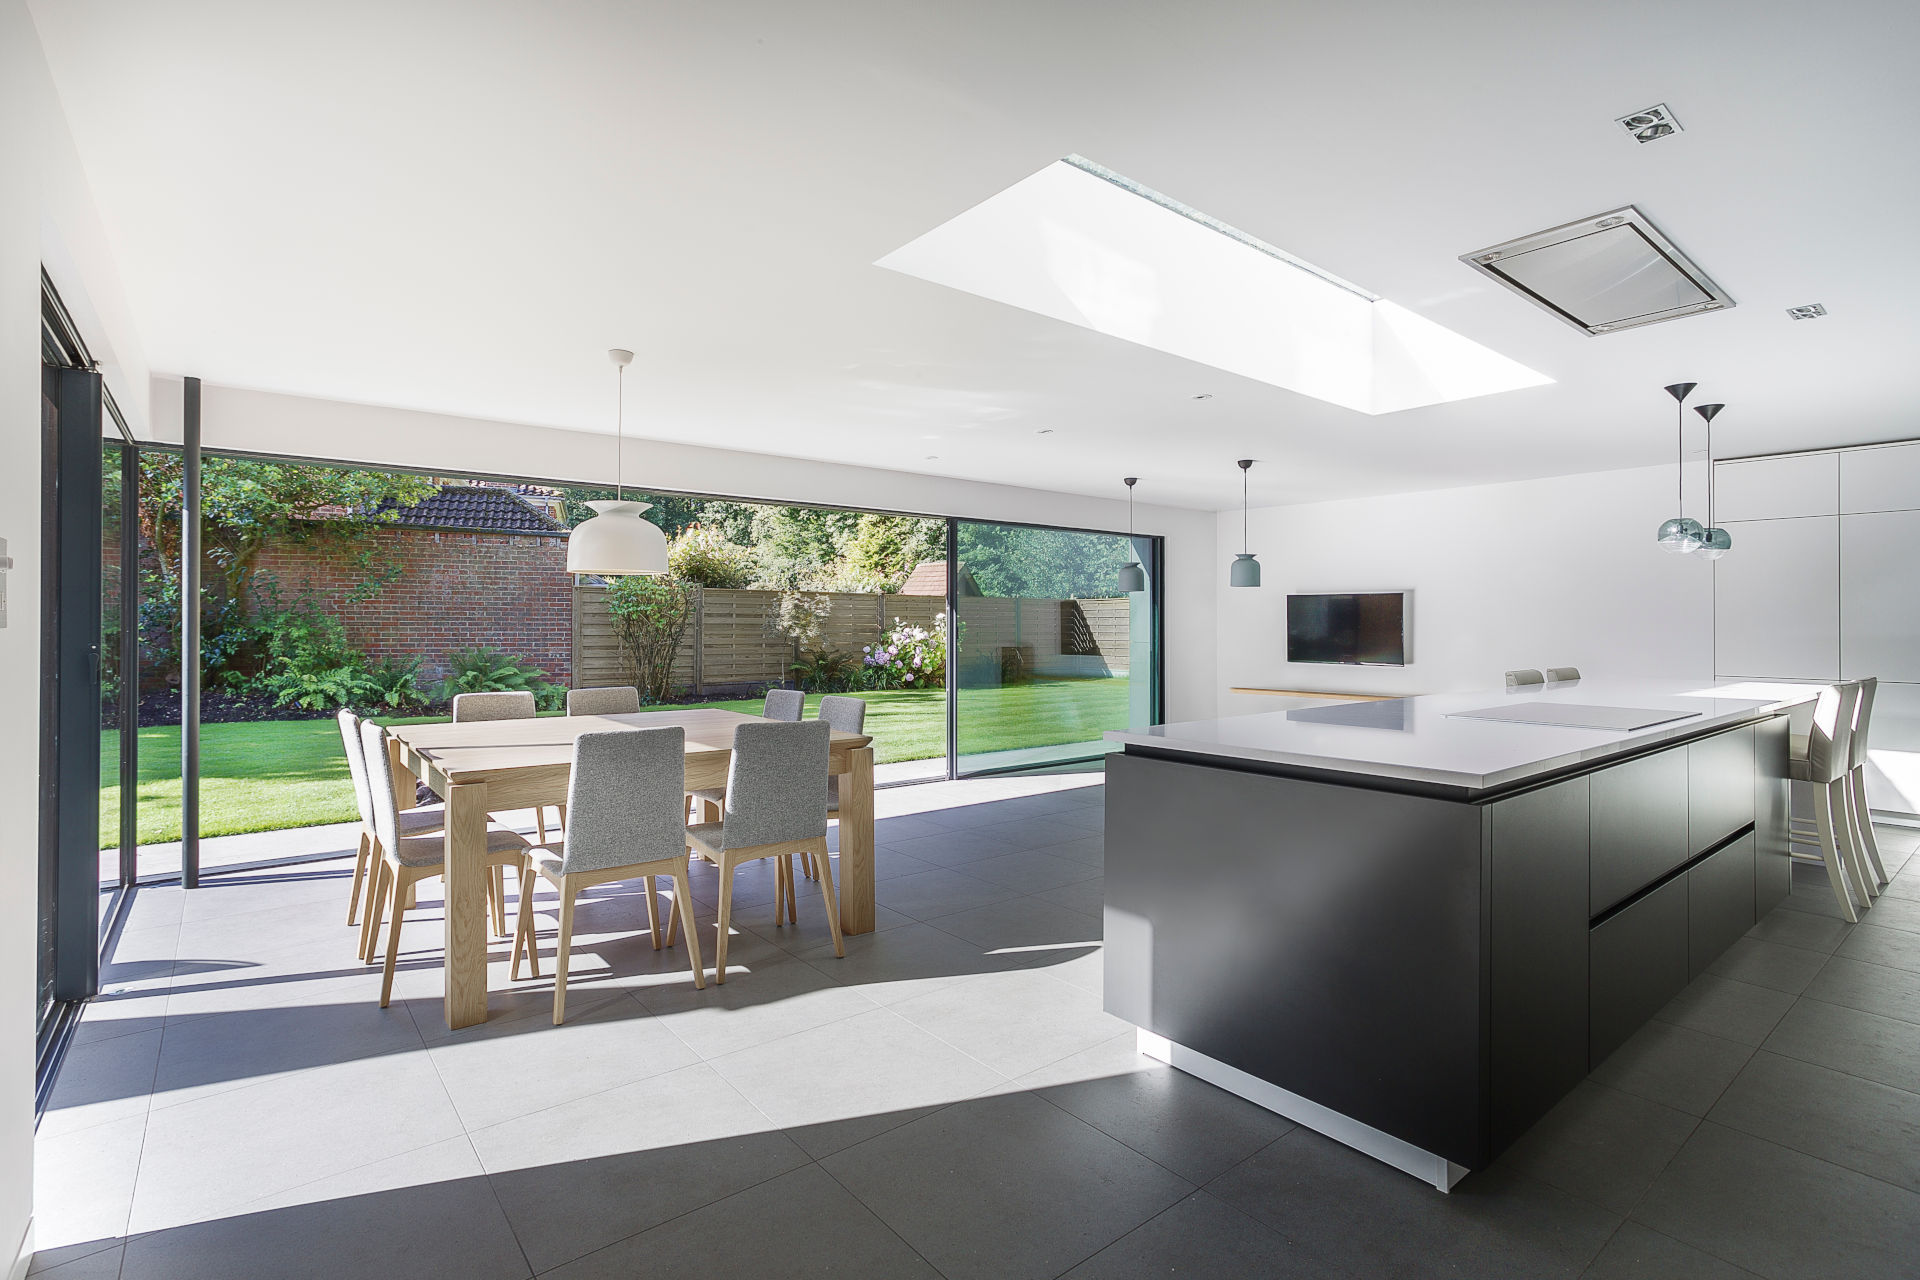 slim-frame-sliding-glass-doors-richmond-house (1)